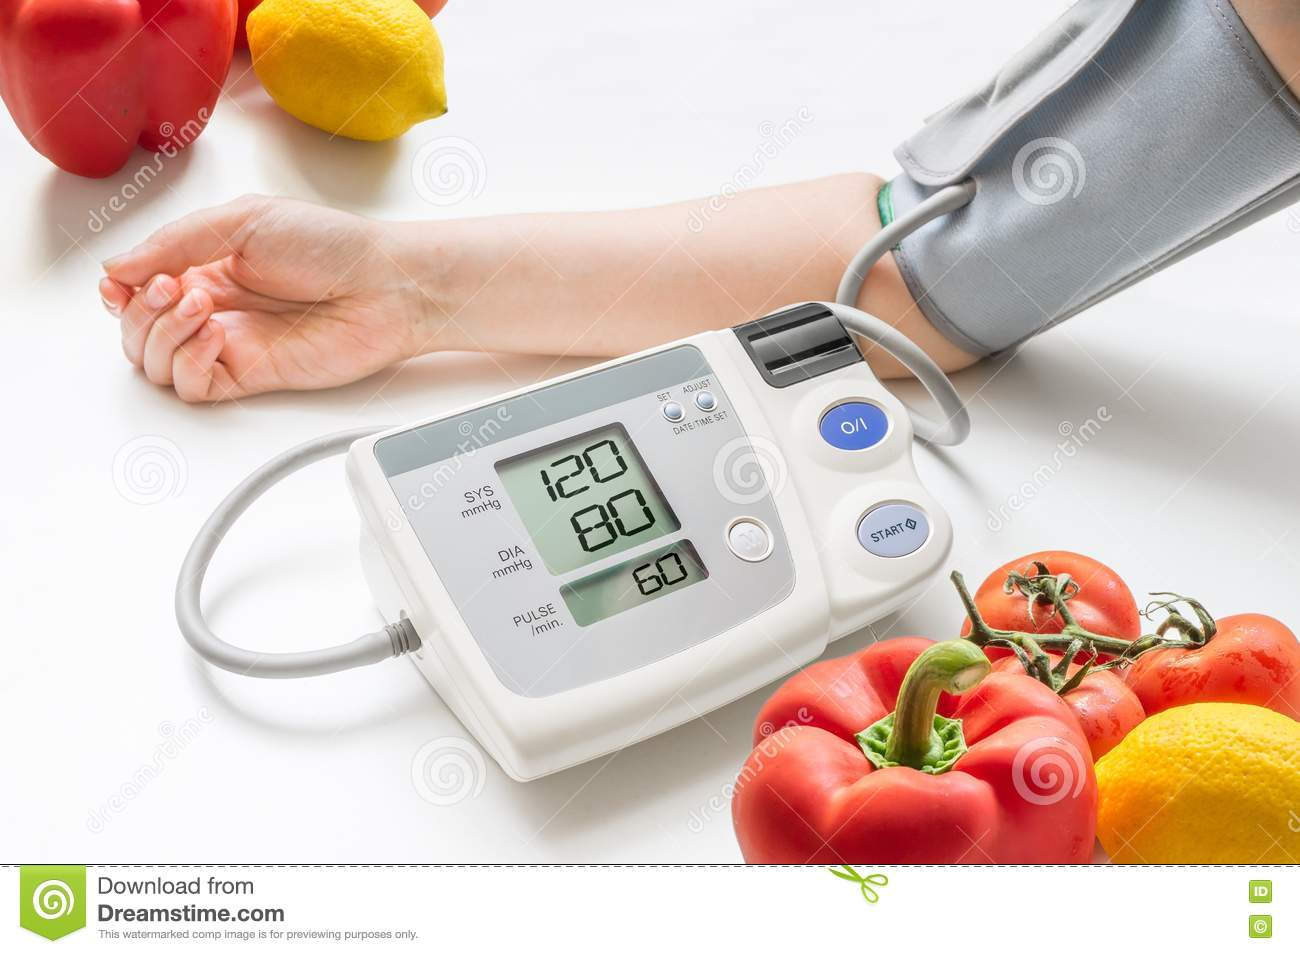 Healthy lifestyle concept. Woman is measuring blood pressure with monitor.